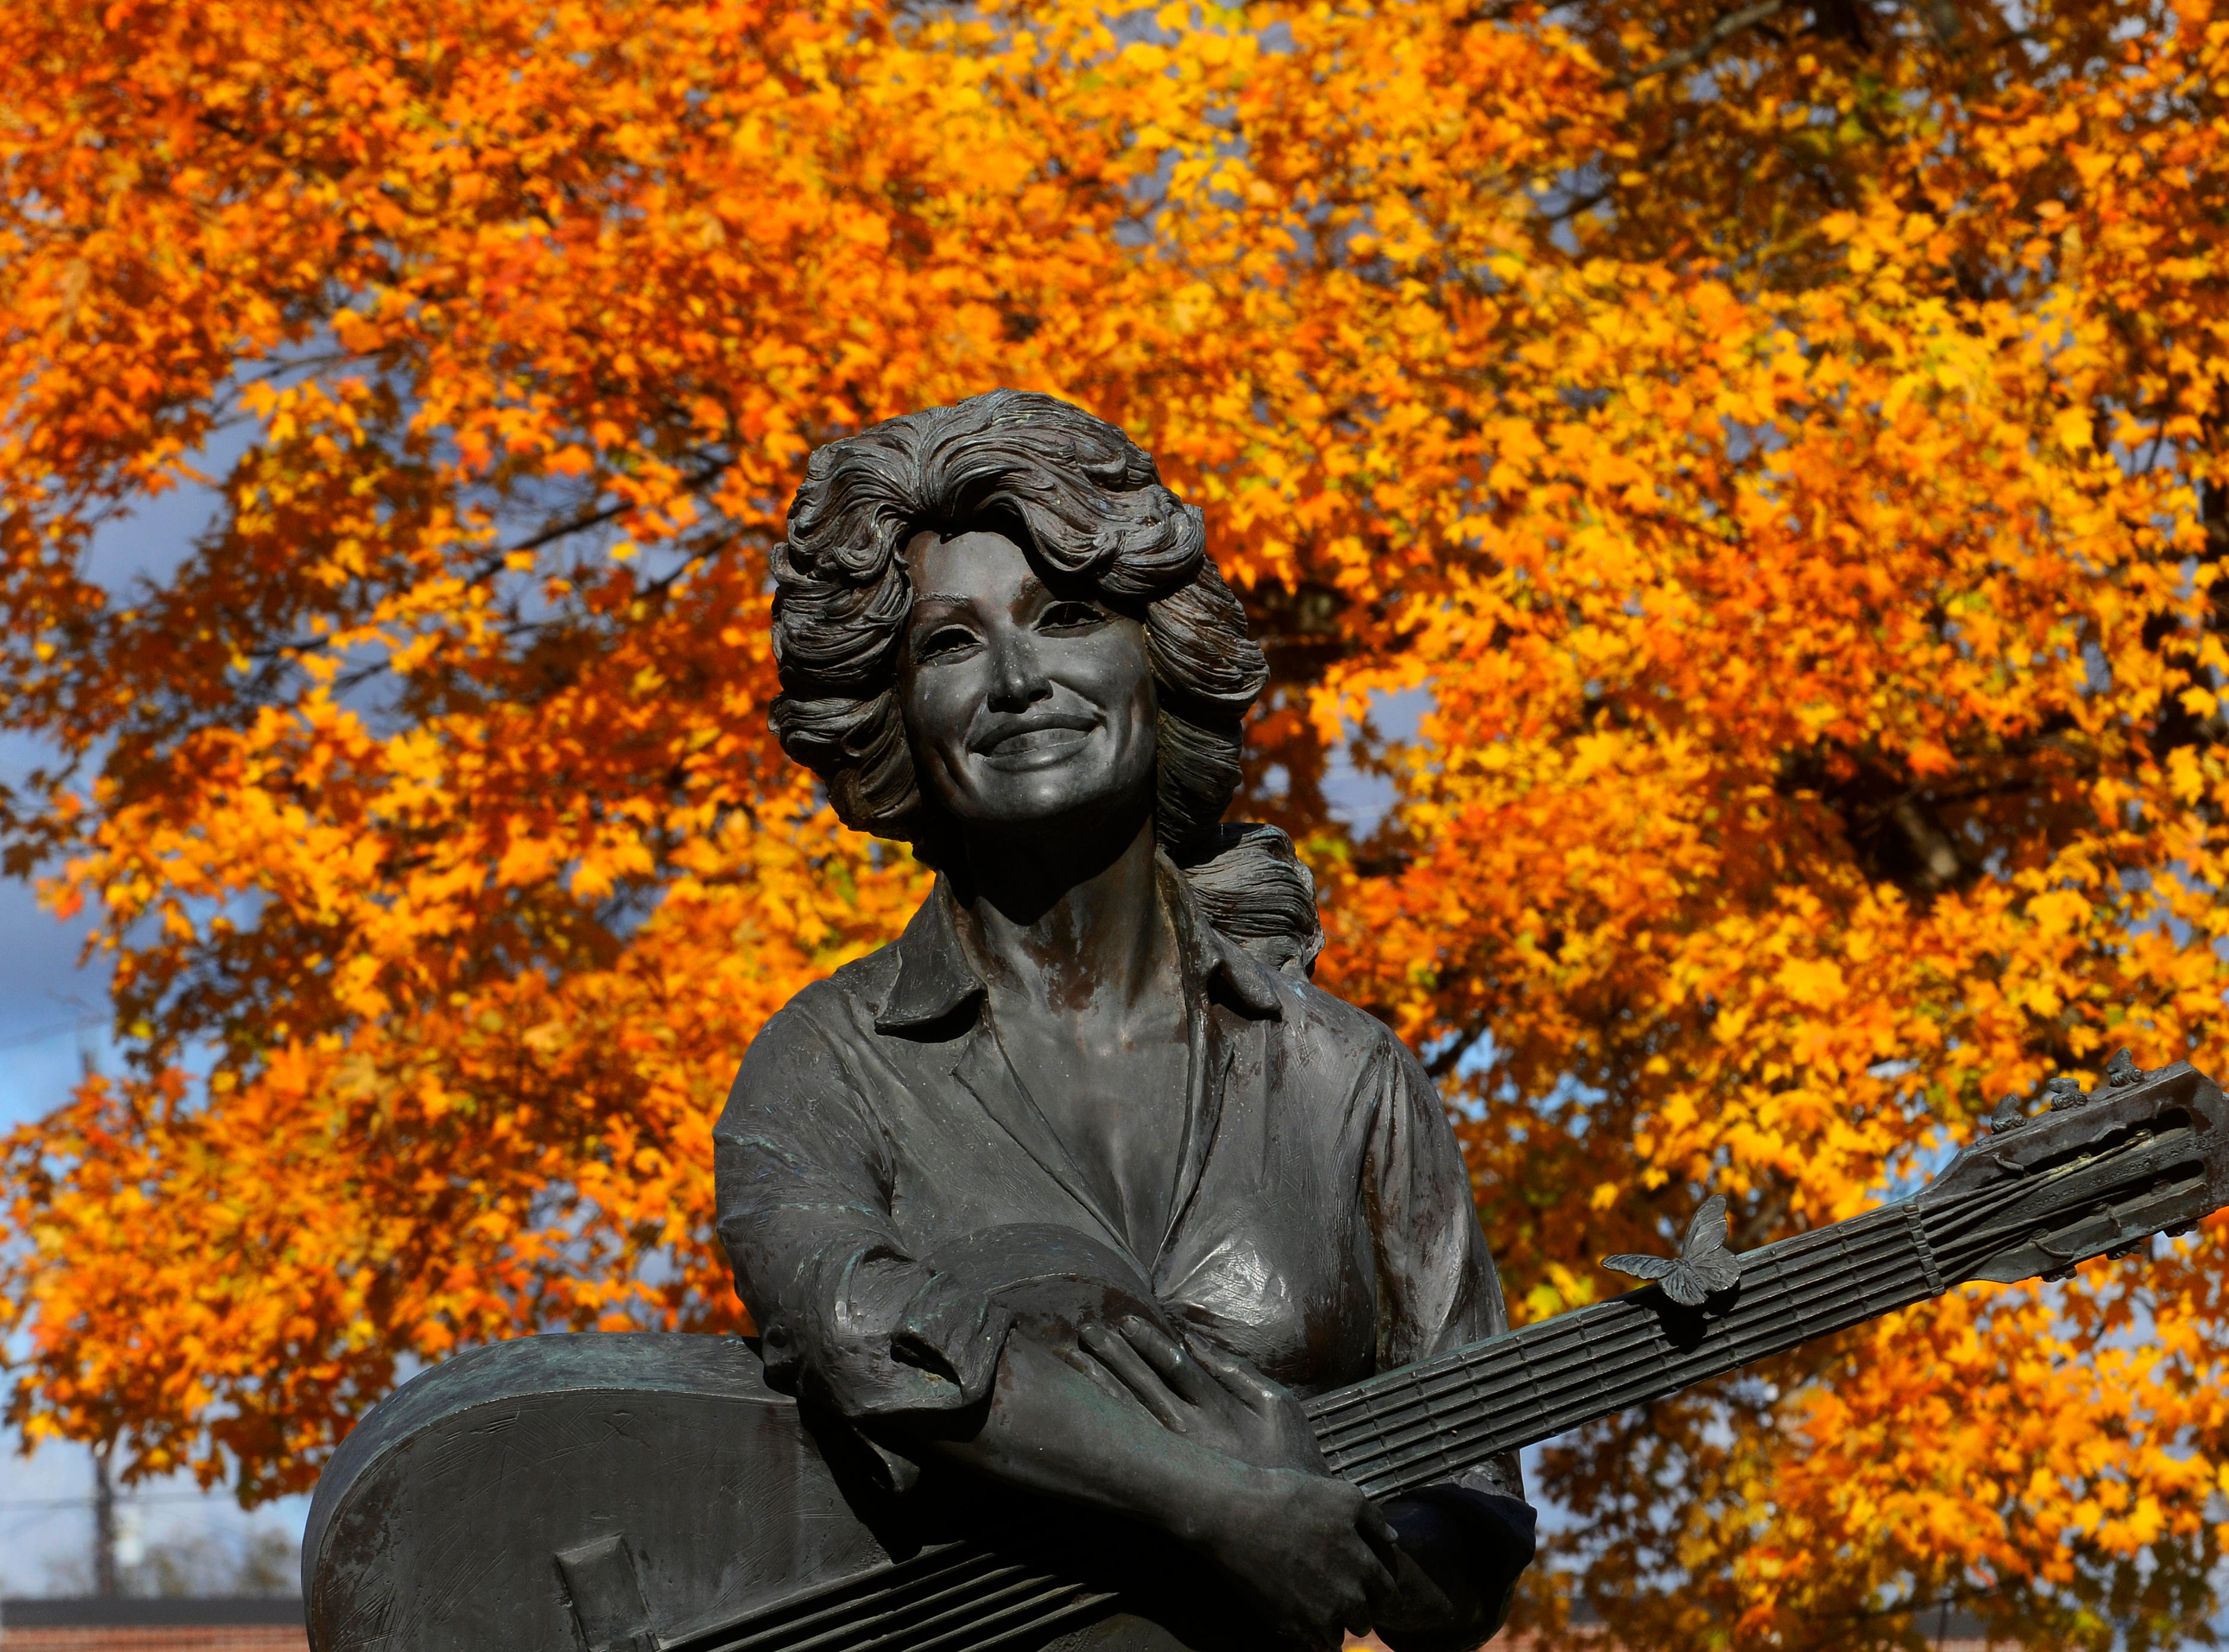 A life-sized statue of Dolly Parton sits on the lawn of the Sevier County Courthouse in Sevierville with a backdrop of changing maple leaves Wednesday, Oct 28, 2009. The statue which was sculpted by local artist Jim Gray was unveiled by Dolly herself on May 2, 1987 features a young Dolly barefoot strumming a guitar. The Sevier County Mayor's administrative assistant Debbie Litton says from her office in the courthouse she views visitors taking their photographs in front of the statue almost daily.